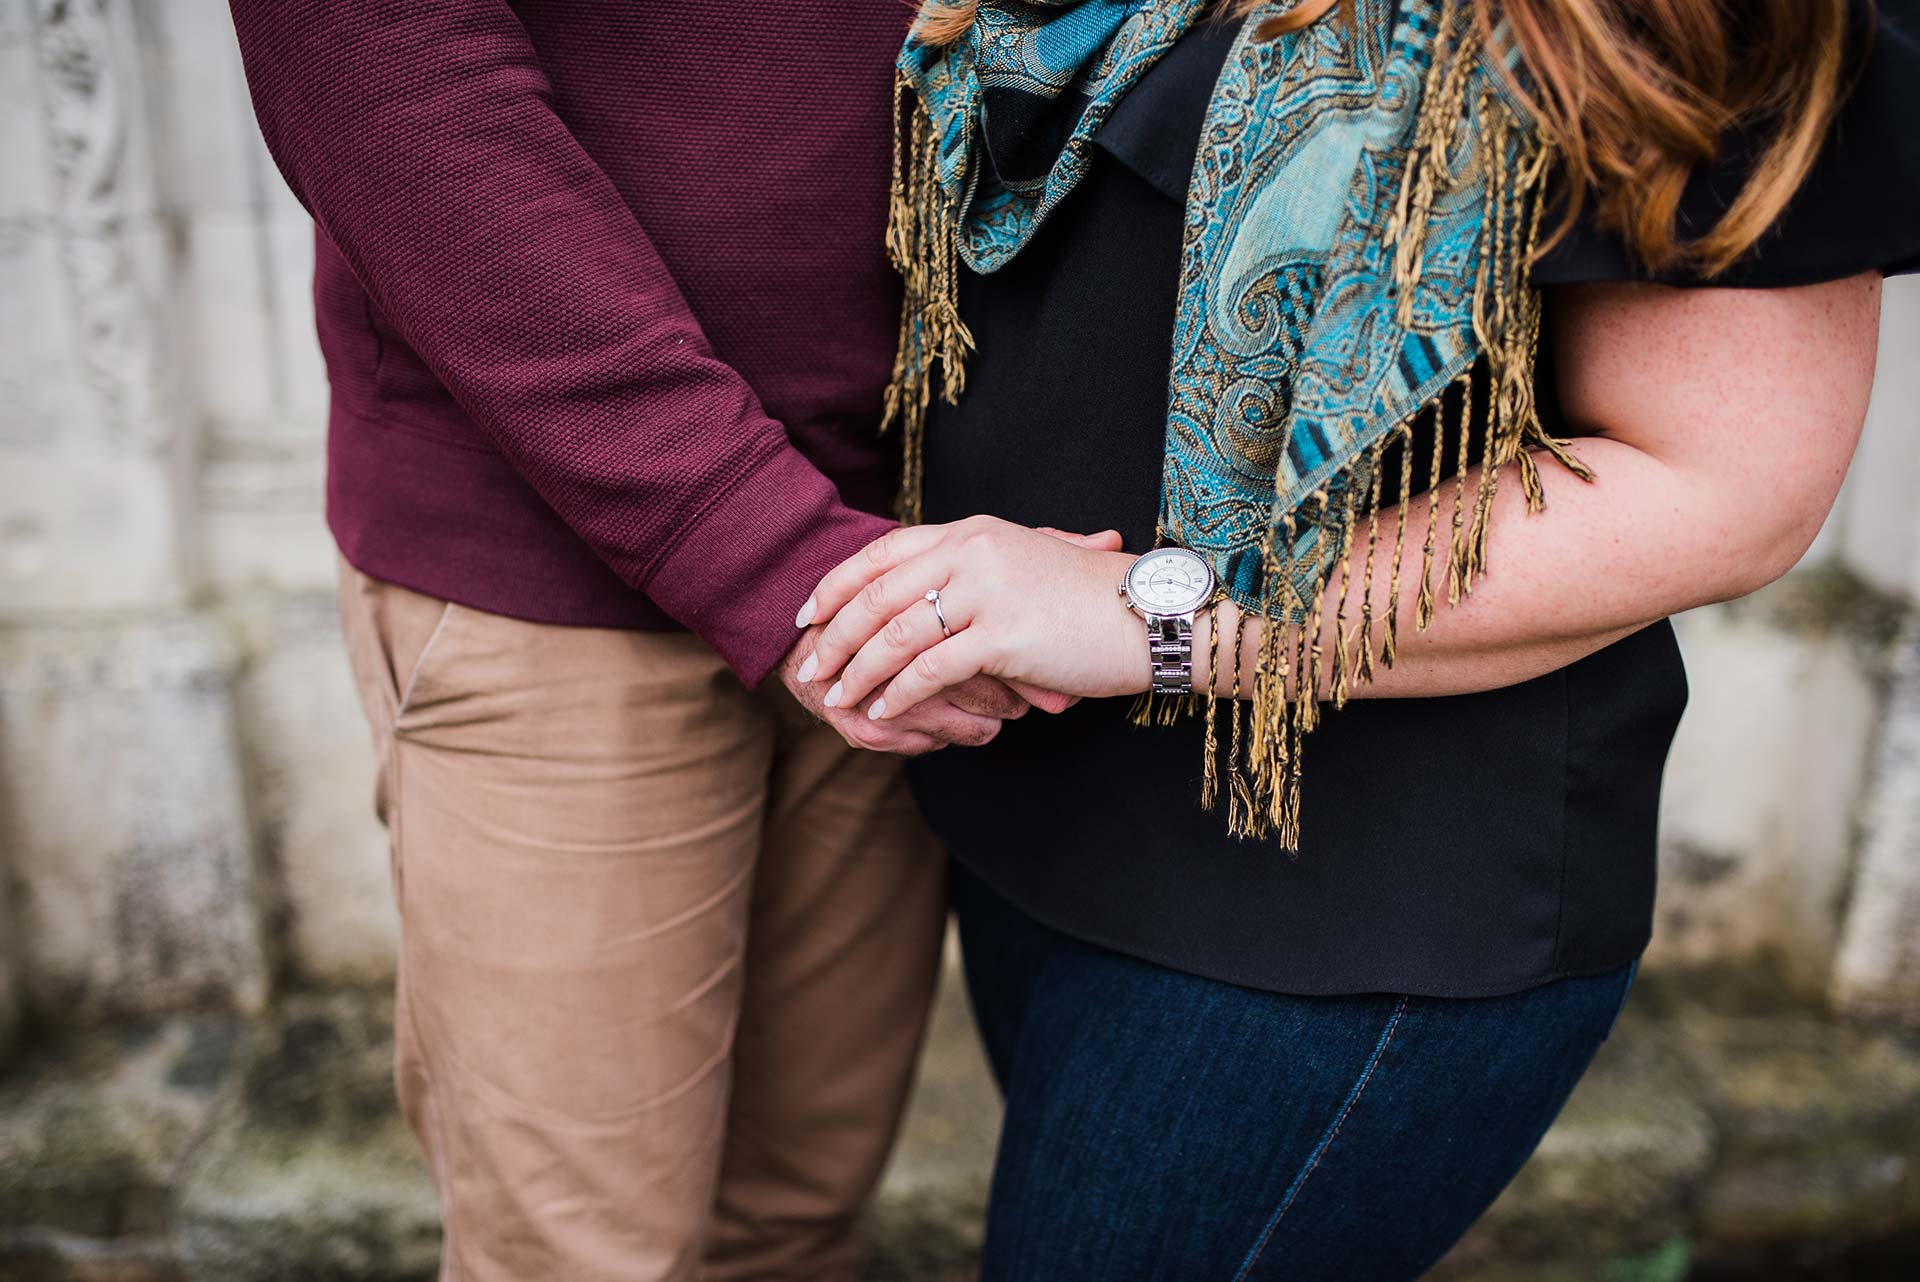 engaged couple holds hand and show engagement ring